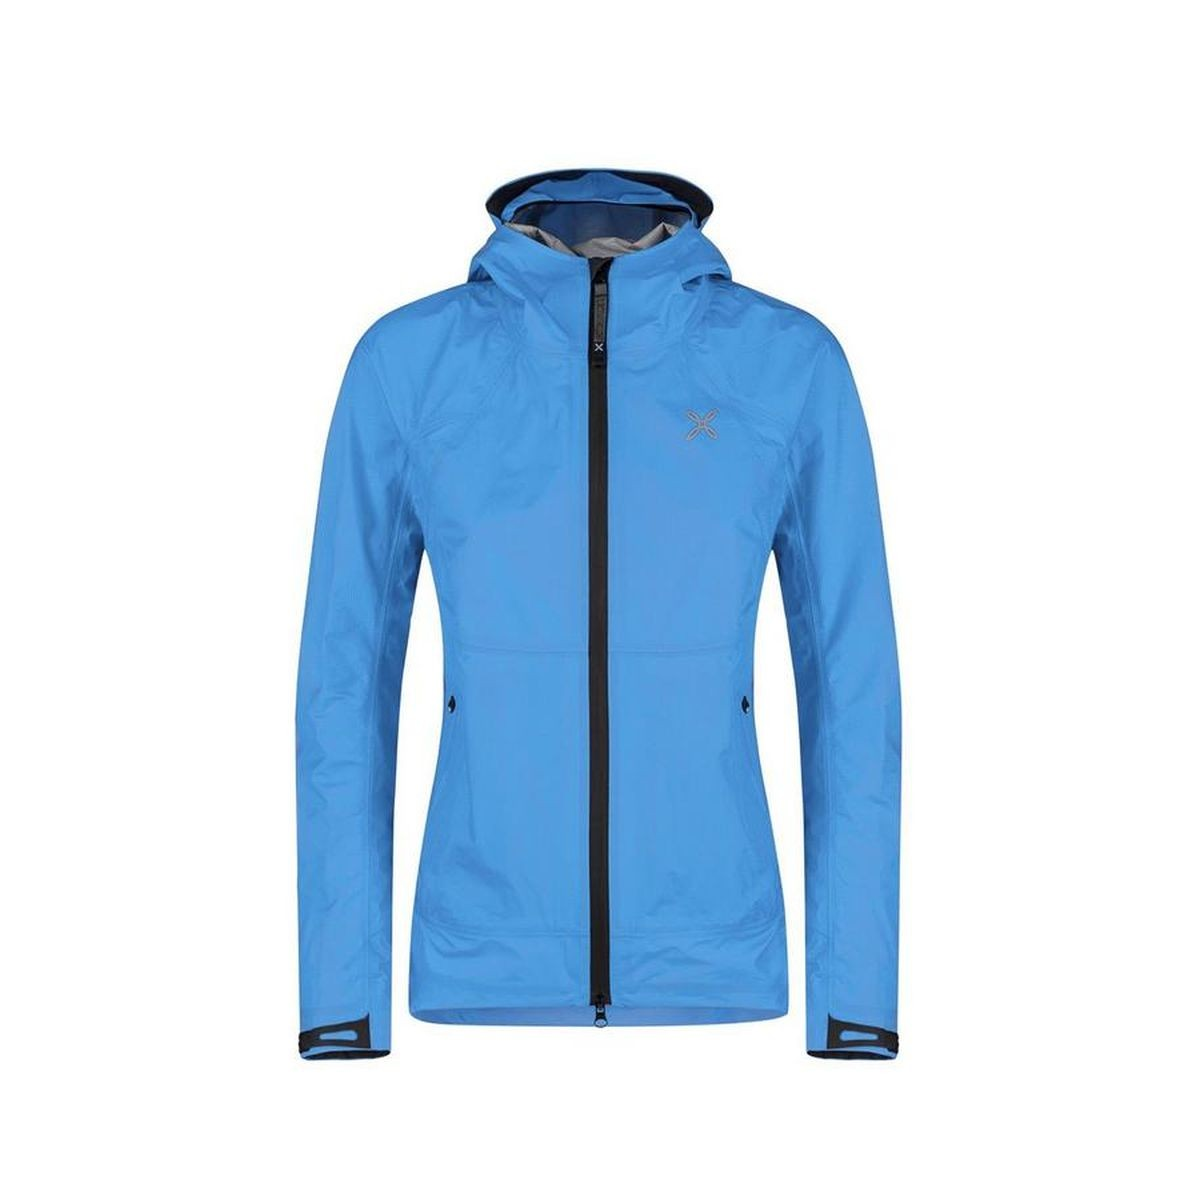 MONTURA - ANYTIME JACKET WMN - WOMEN